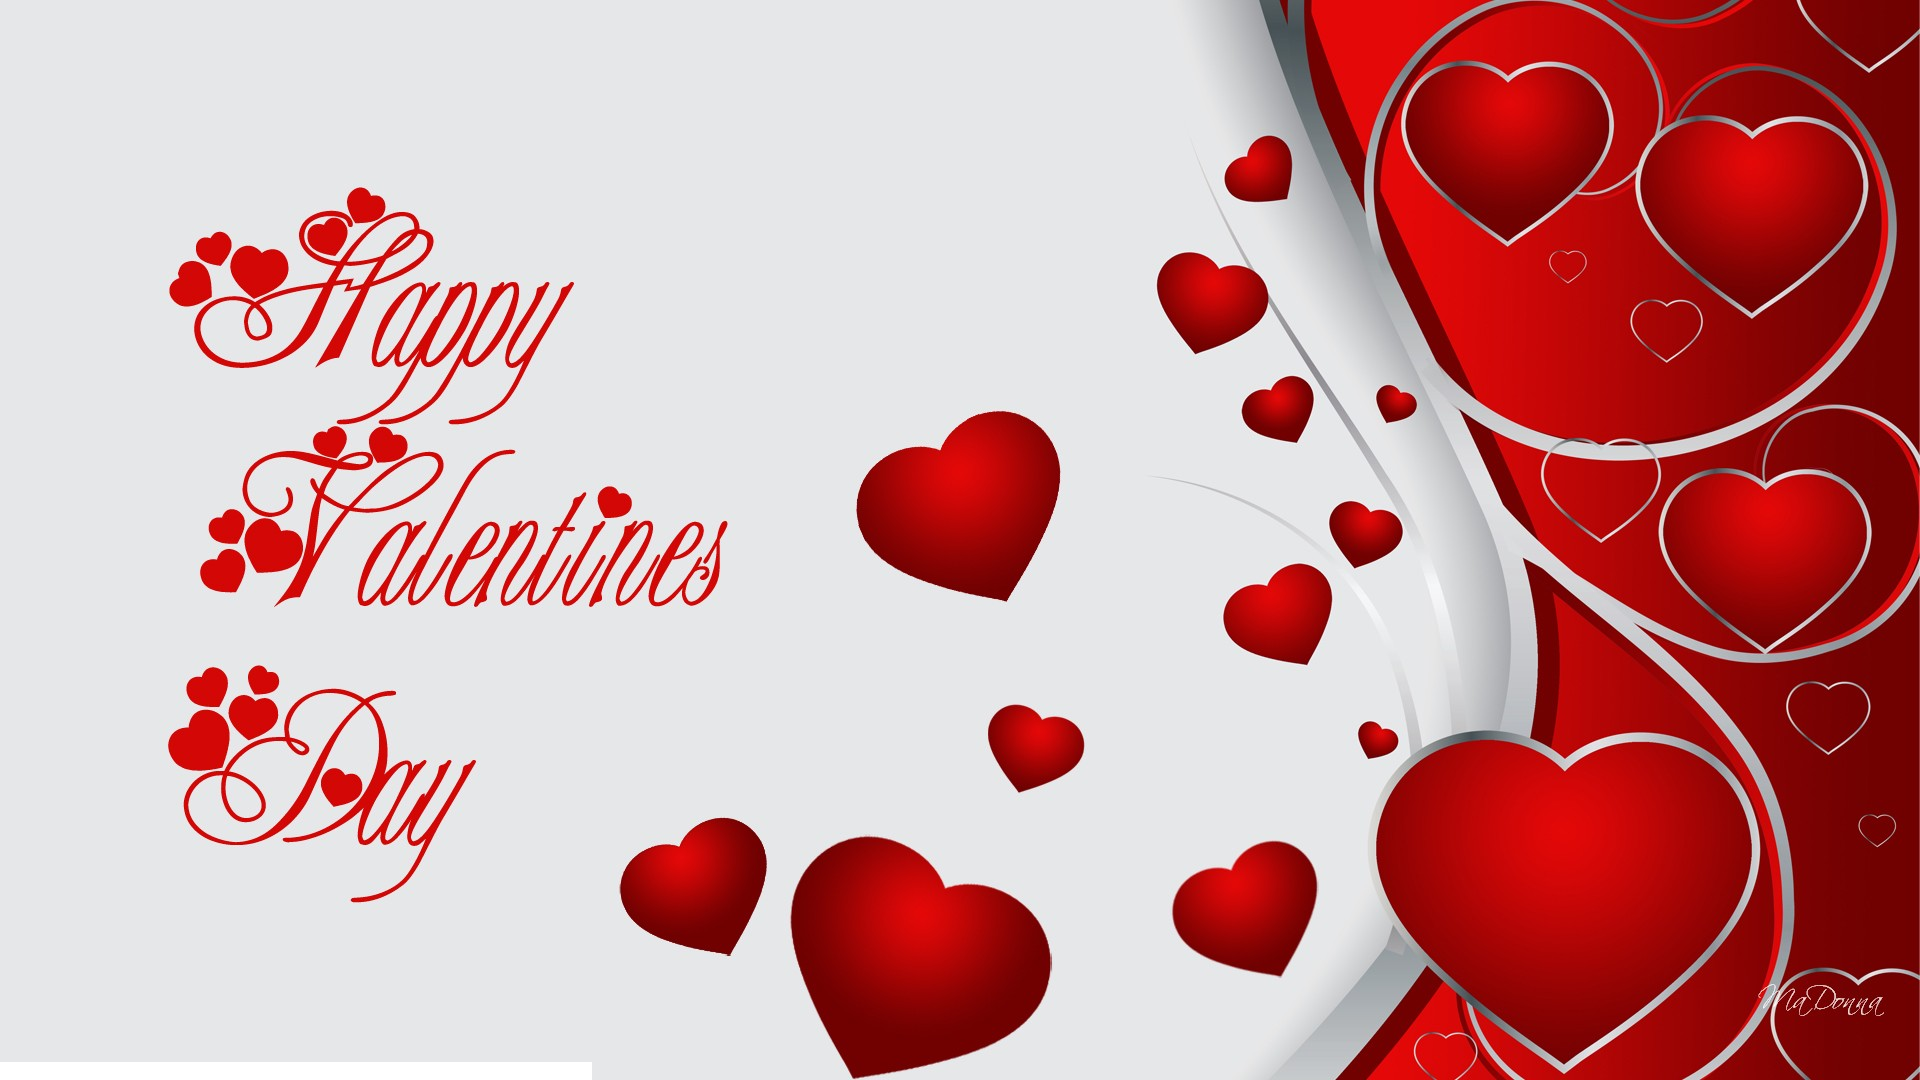 [10 Best] Valentineu002639;s Day PC Wallpapers to Make the Mood Romantic  Techicy